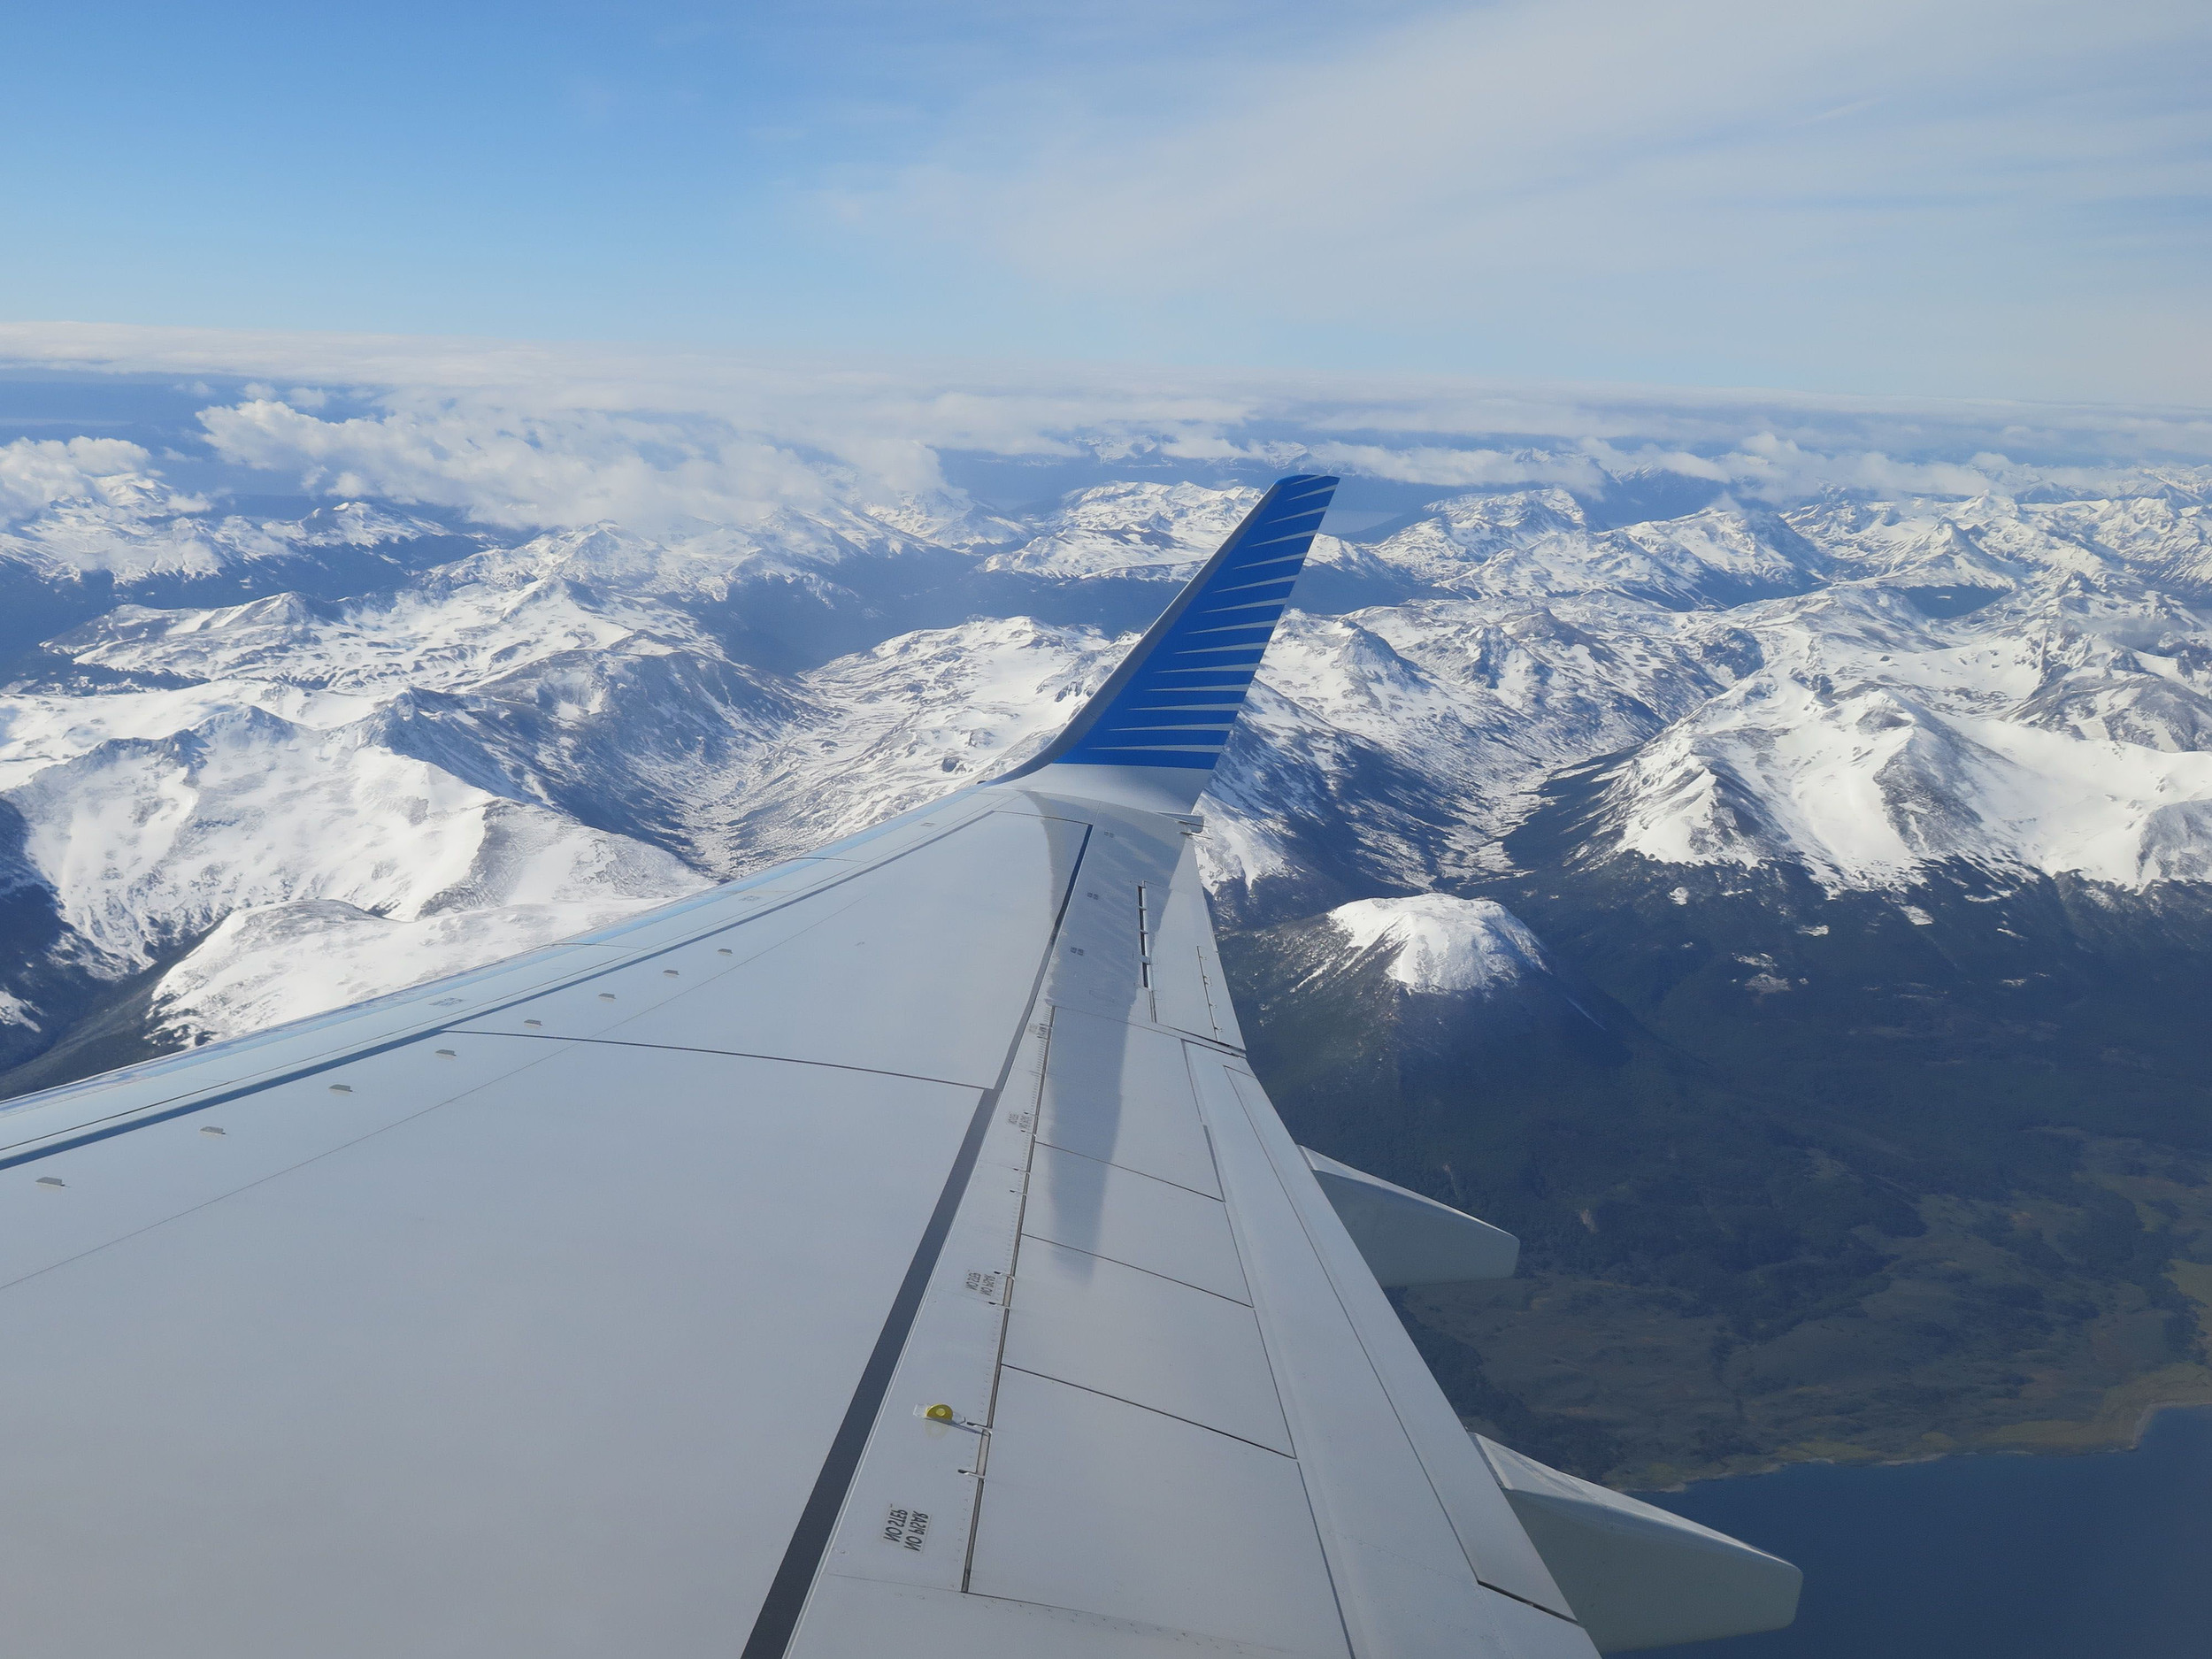 This is my view of the Andes. We shall soon land in Tierra del Fuego, which I have not set foot upon in 130 years.